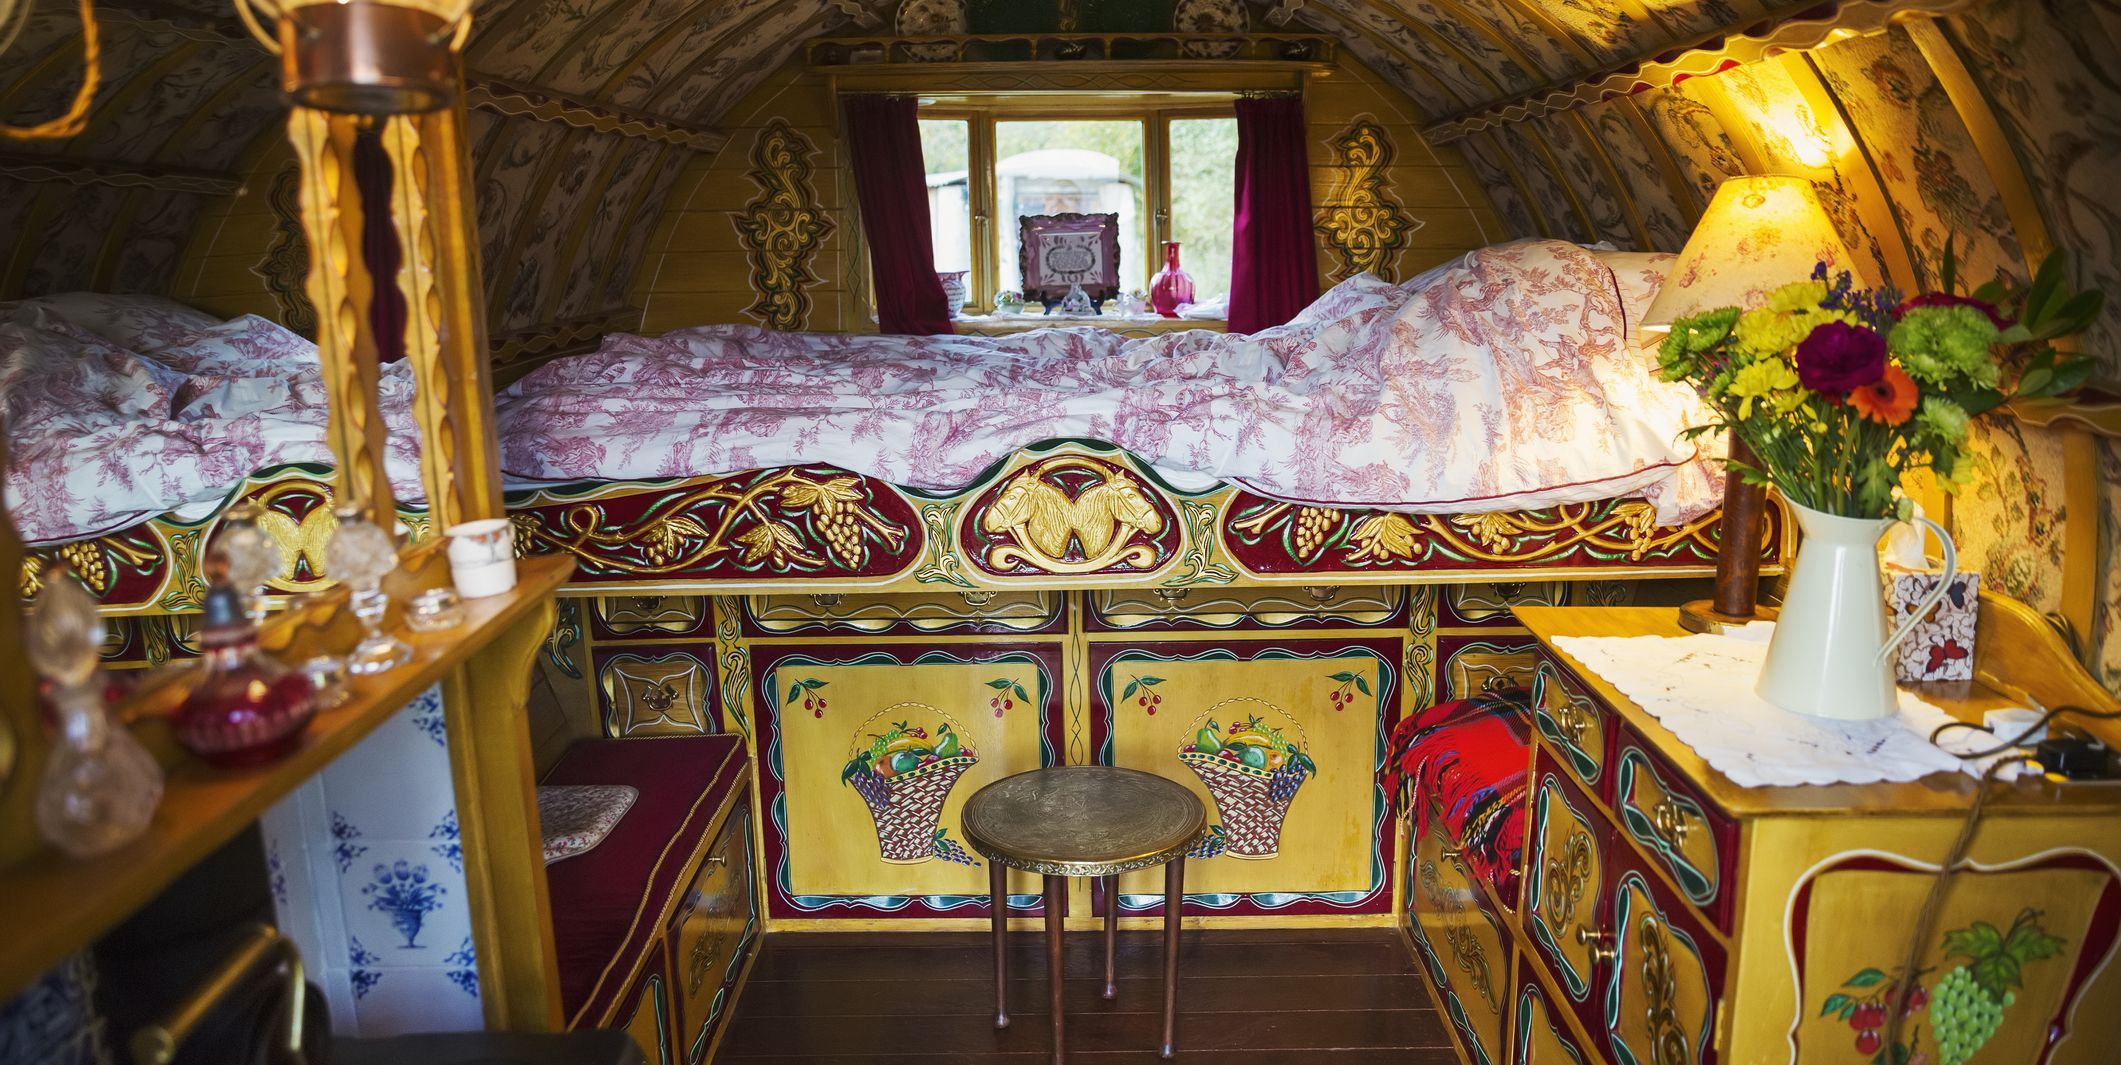 The interior of a traditional gypsy caravan with raised bed and cupboards, bow top roof and stove.